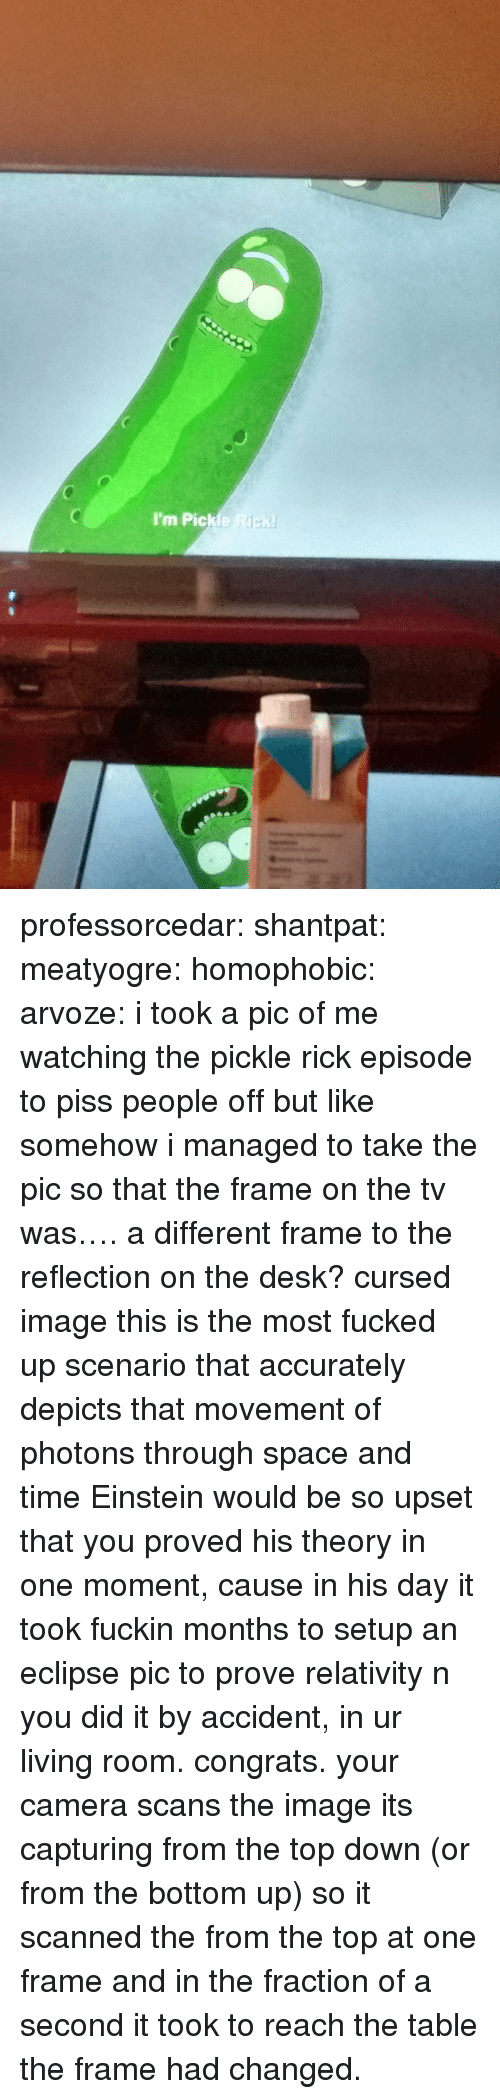 relativity: I'm Pickle Rick professorcedar:  shantpat:  meatyogre:  homophobic:  arvoze: i took a pic of me watching the pickle rick episode to piss people off but like somehow i managed to take the pic so that the frame on the tv was…. a different frame to the reflection on the desk?  cursed image  this is the most fucked up scenario that accurately depicts that movement of photons through space and time  Einstein would be so upset that you proved his theory in one moment, cause in his day it took fuckin months to setup an eclipse pic to prove relativity n you did it by accident, in ur living room. congrats.   your camera scans the image its capturing from the top down (or from the bottom up) so it scanned the from the top at one frame and in the fraction of a second it took to reach the table the frame had changed.